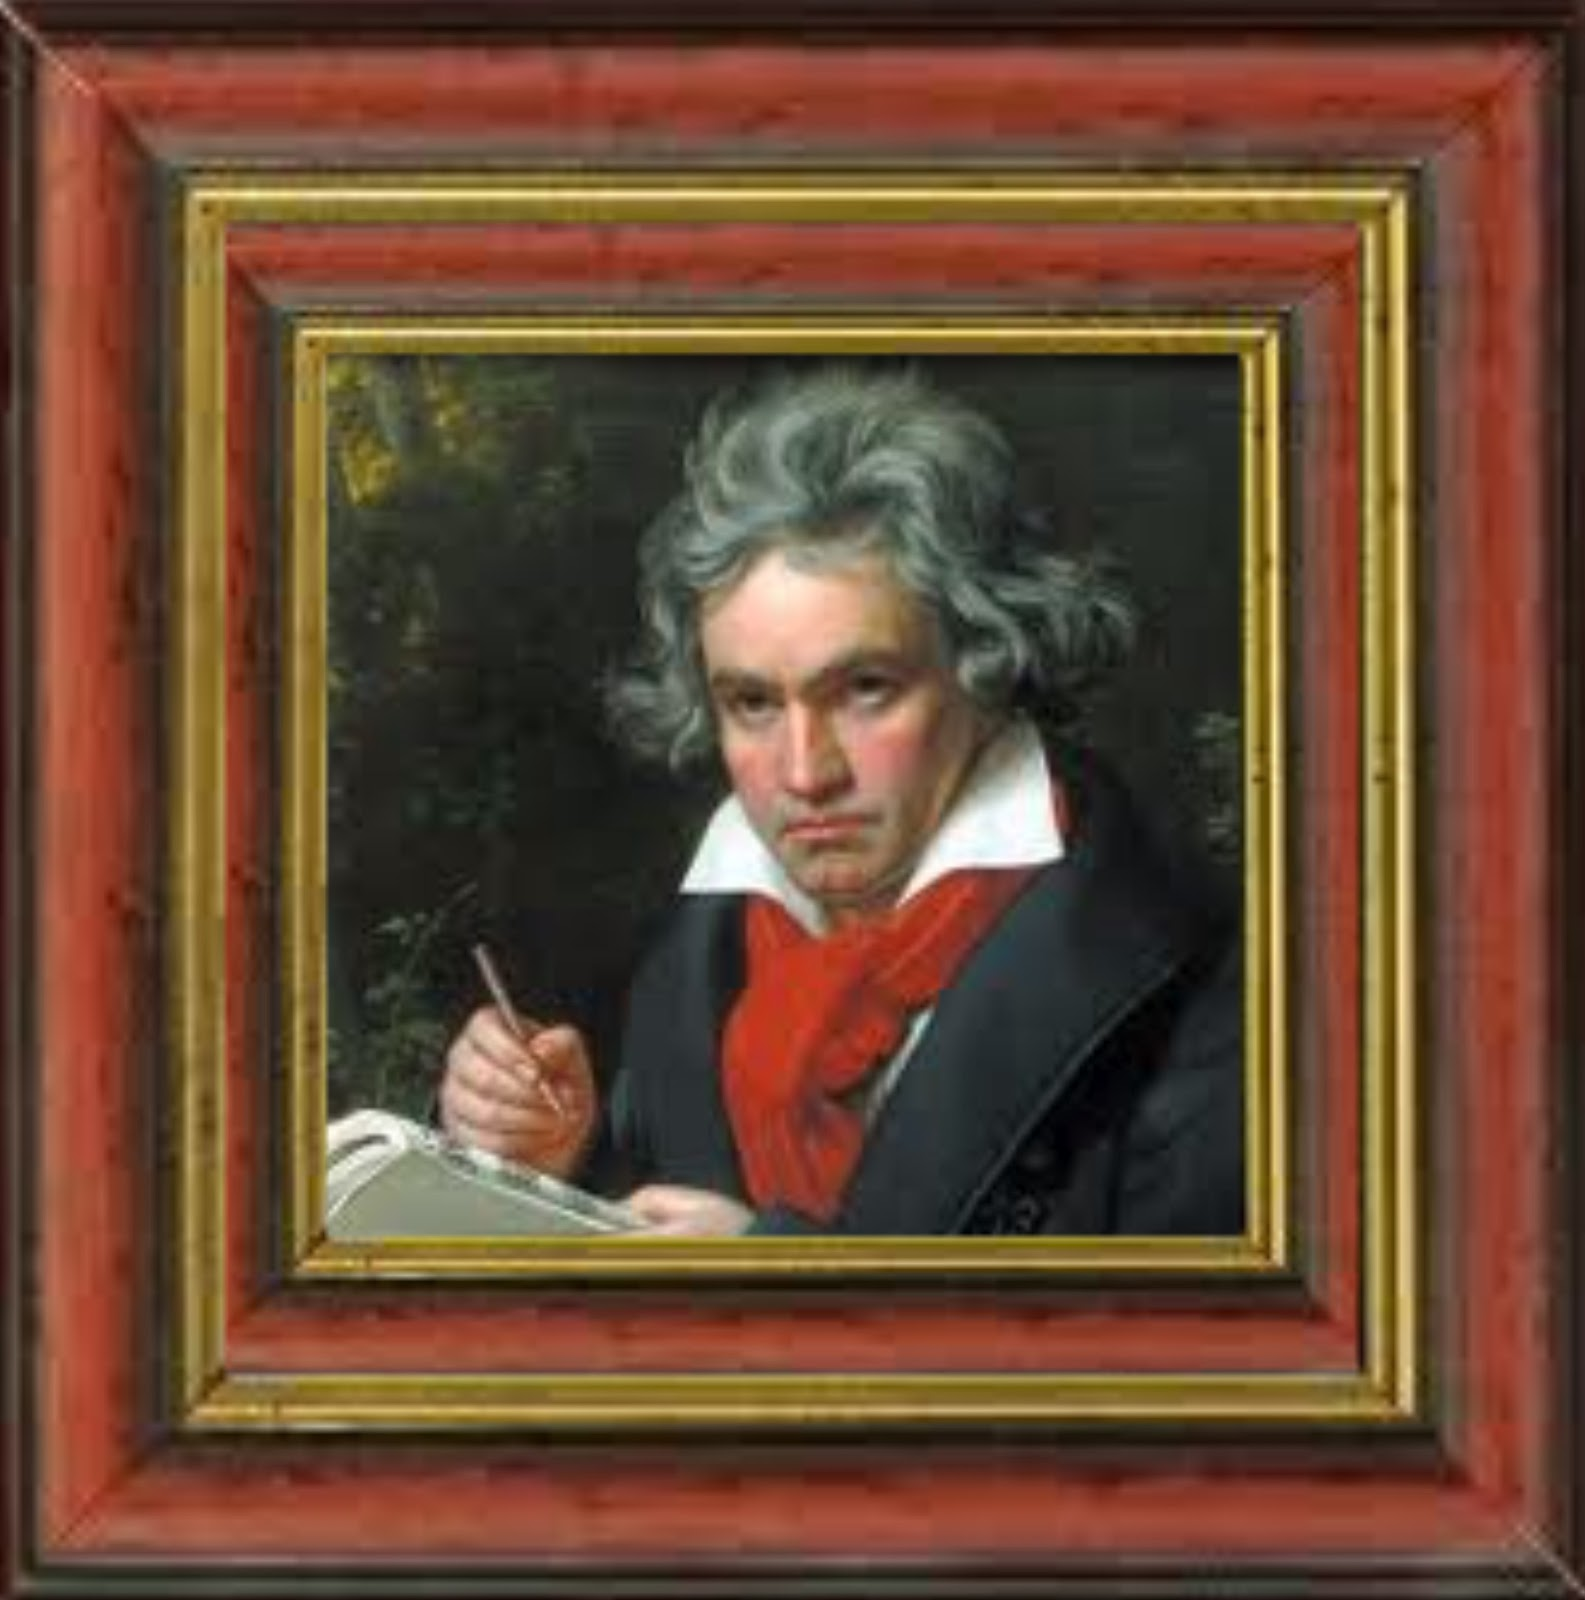 essay on beethoven symphony no 5 Ludwig van beethoven: symphony no 5, analysis by gerard schwarz (part 3 & 4) ludwig van beethoven: symphony no 5, a conducting lesson by gerard schwarz (1st.